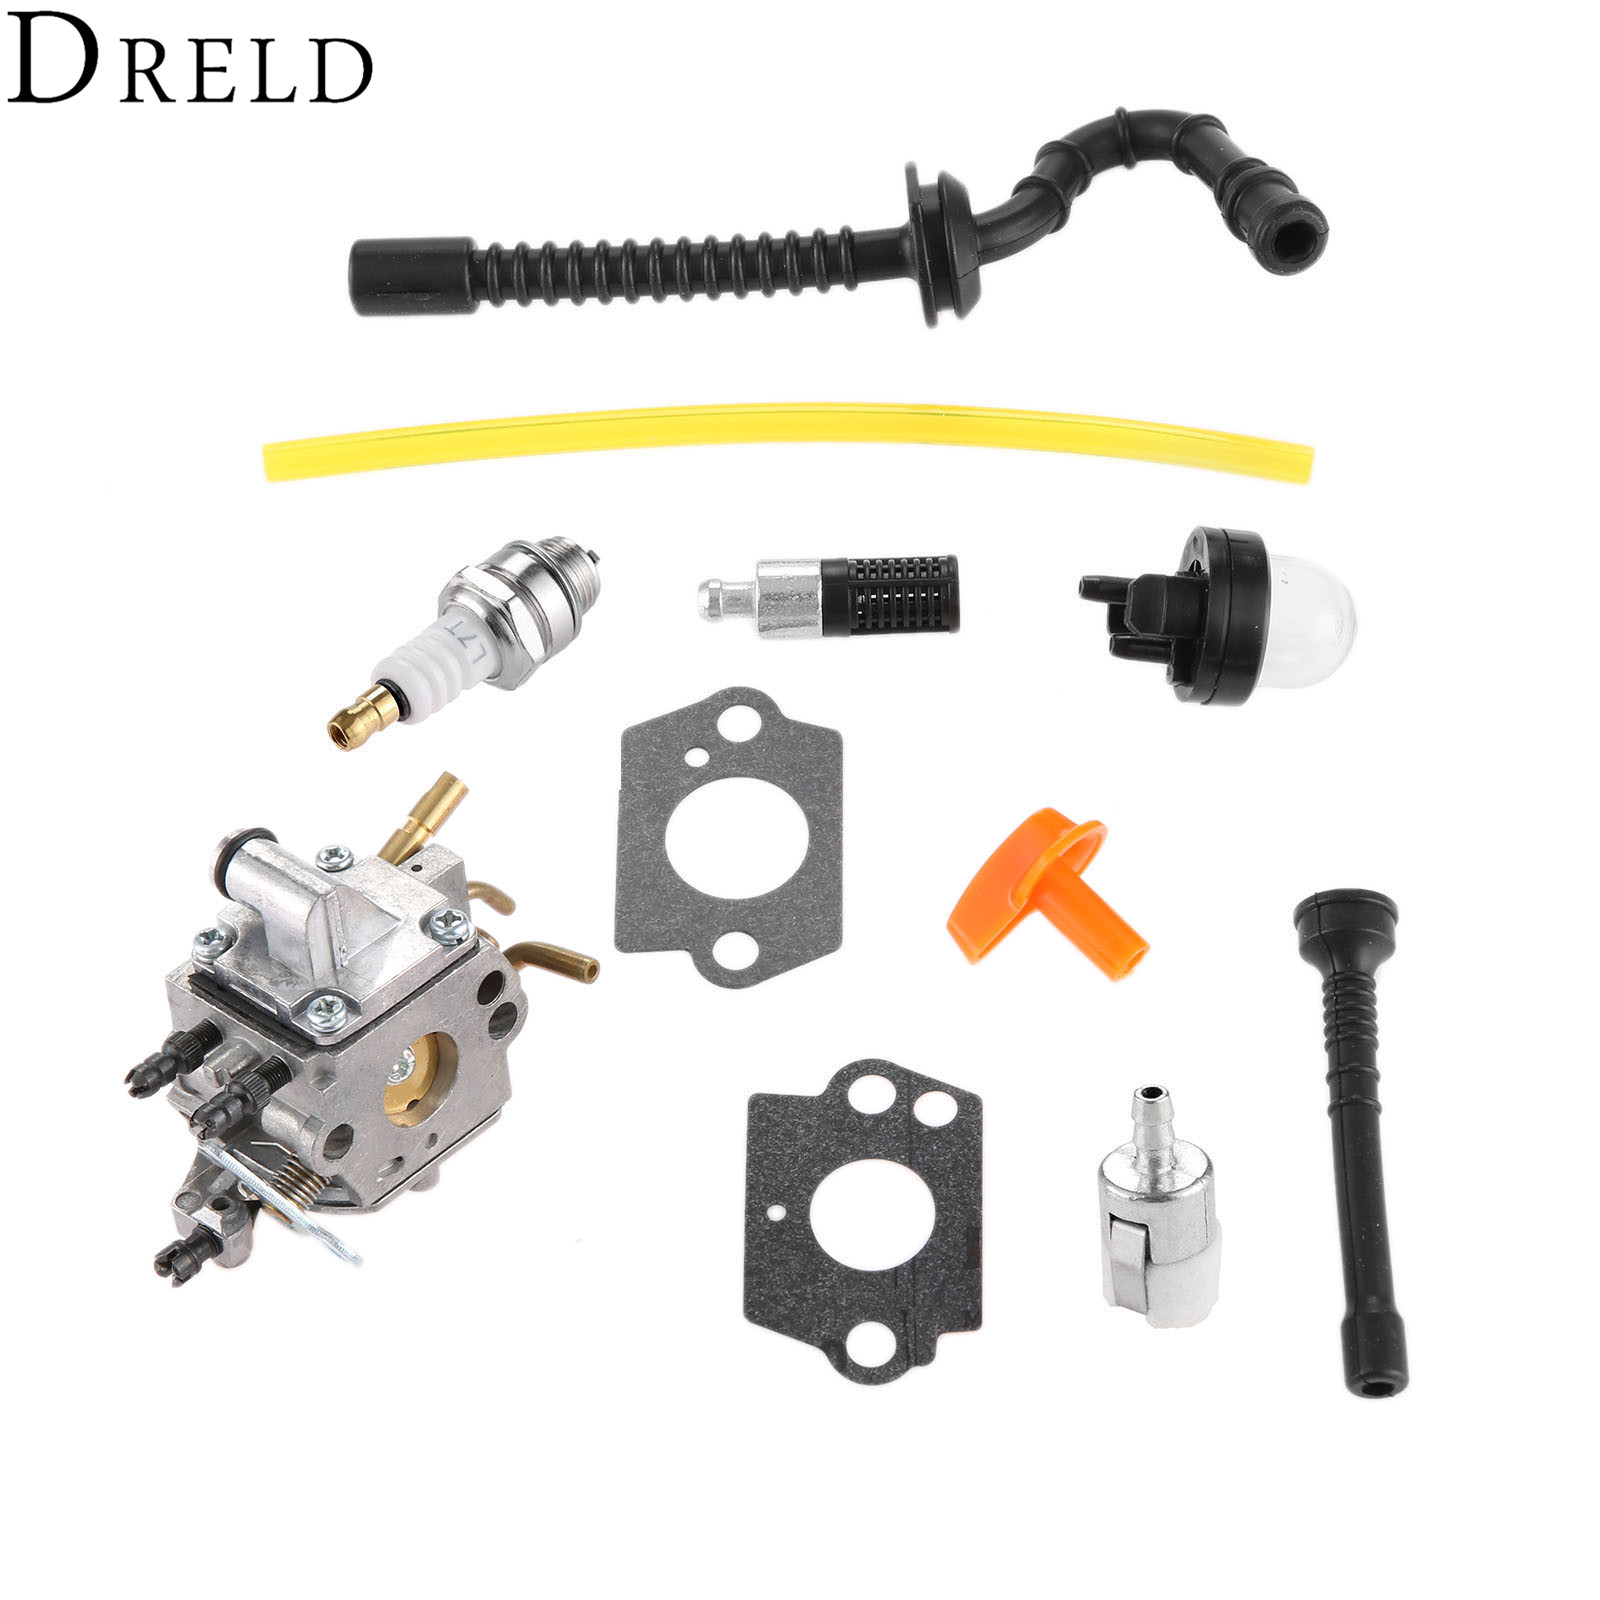 DRELD Carburetor Carb for Stihl MS192 MS192T MS192TC Chainsaw Zama C1Q S258  with Gasket Fuel Filter Hose Pimer Bulb Spark Plug-in Chainsaws from Tools  on ...